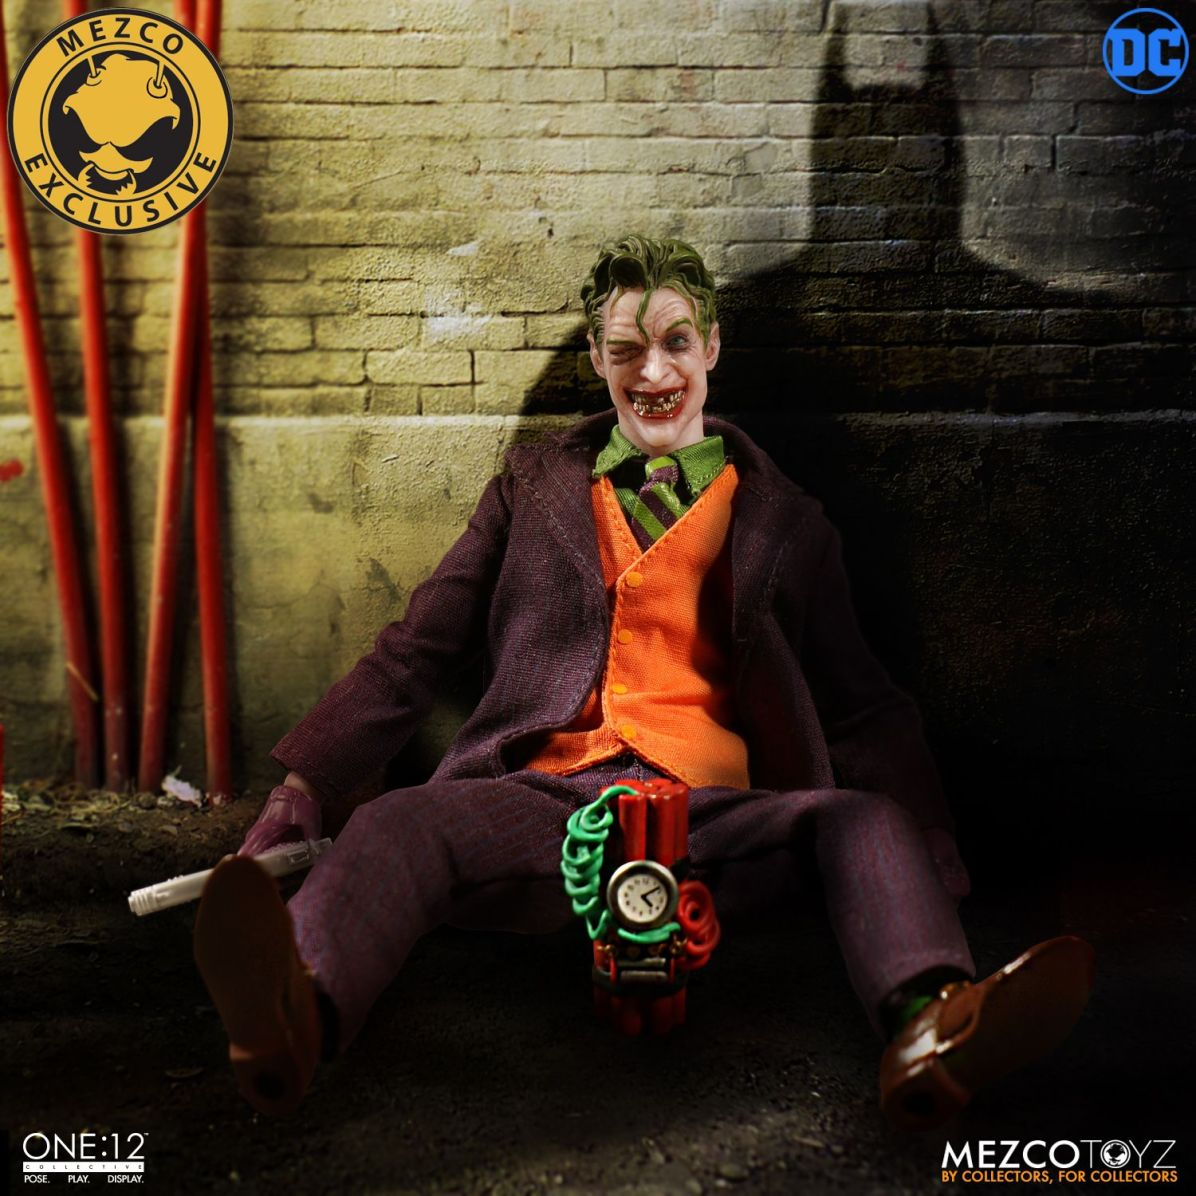 Mezco: One:12 DC Joker Deluxe Edition Available for Preorder